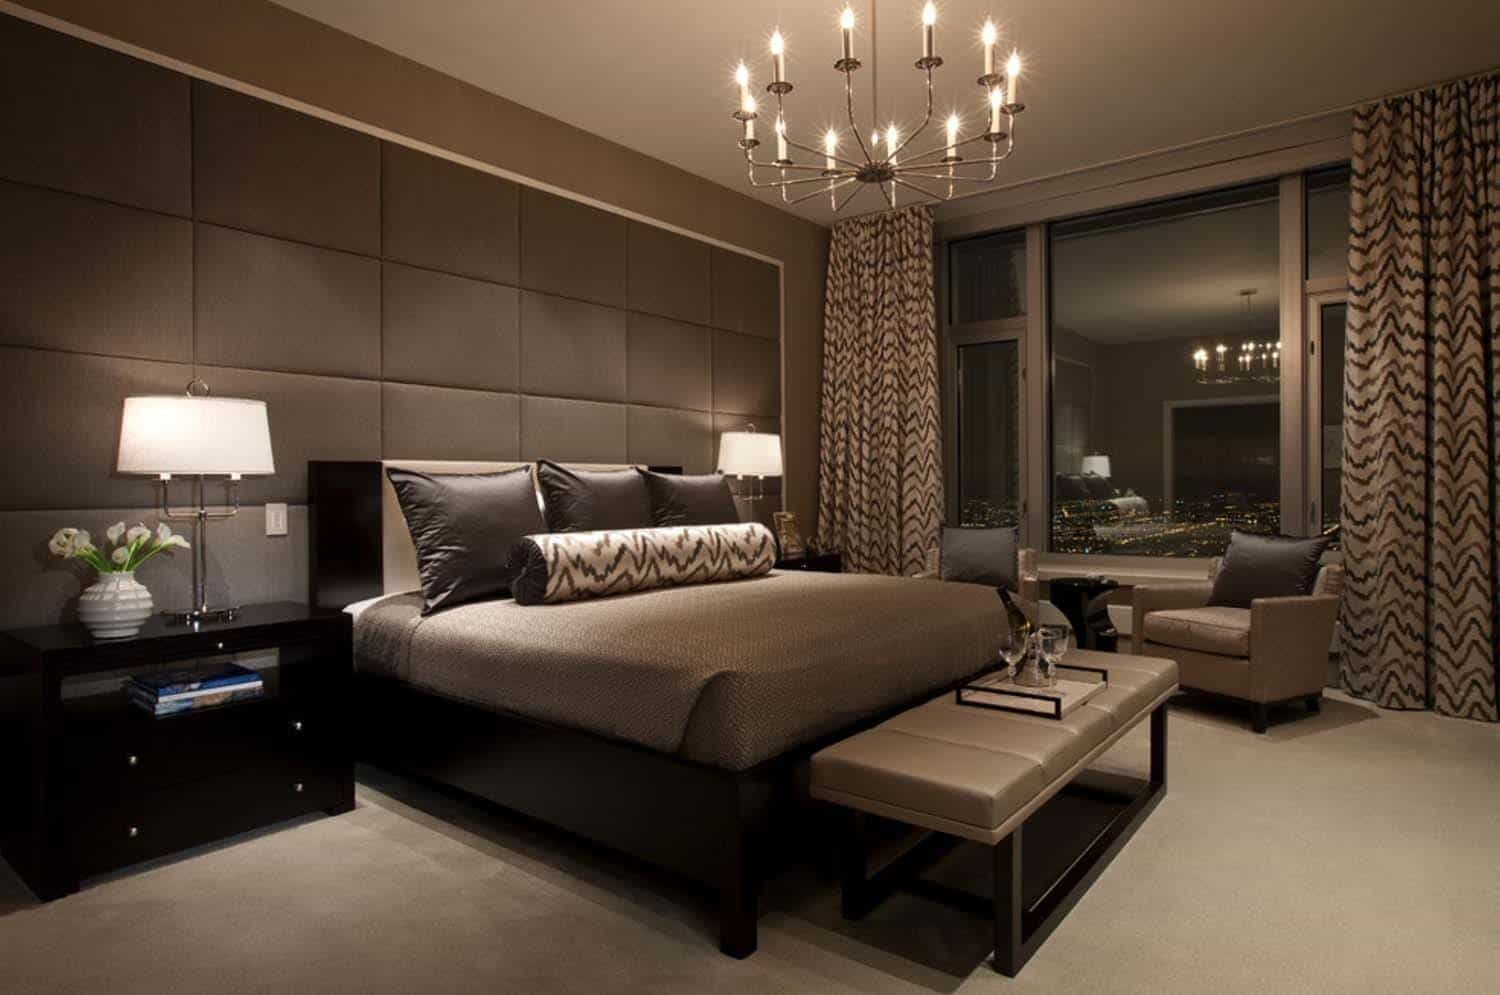 Neutral-Bedroom-Design-Ideas-37-1 Kindesign